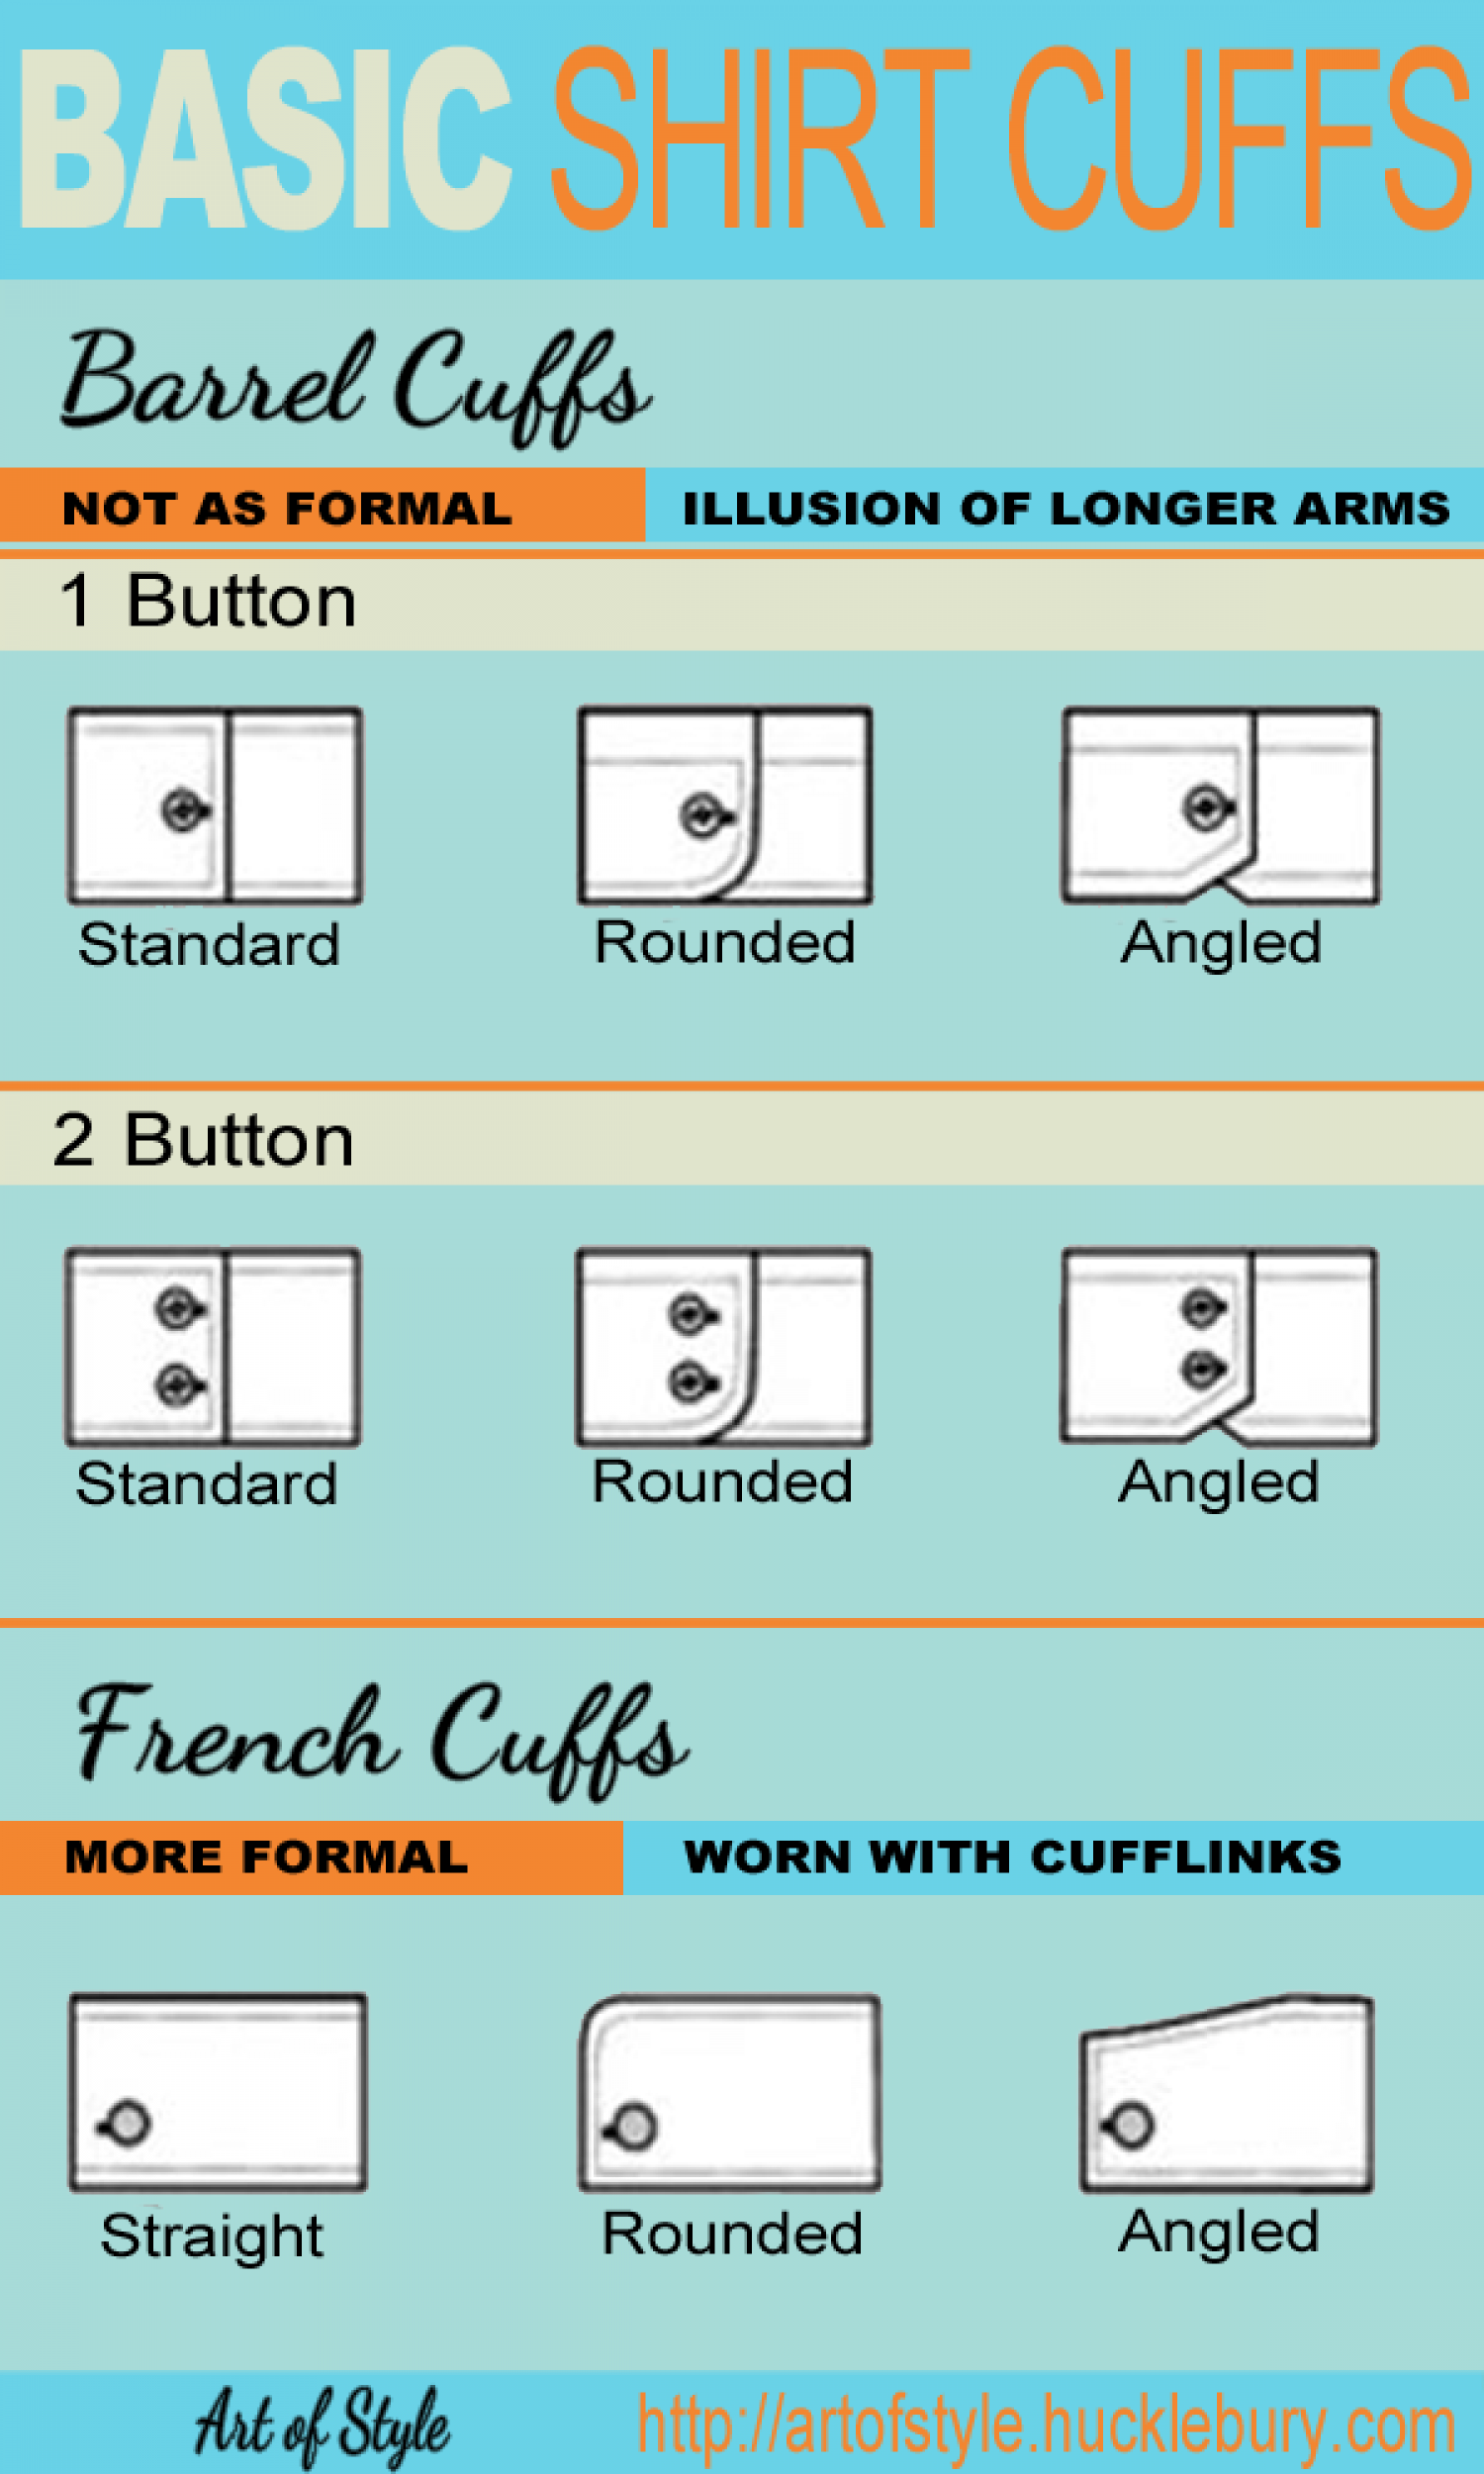 Basic Shirt Cuffs Infographic